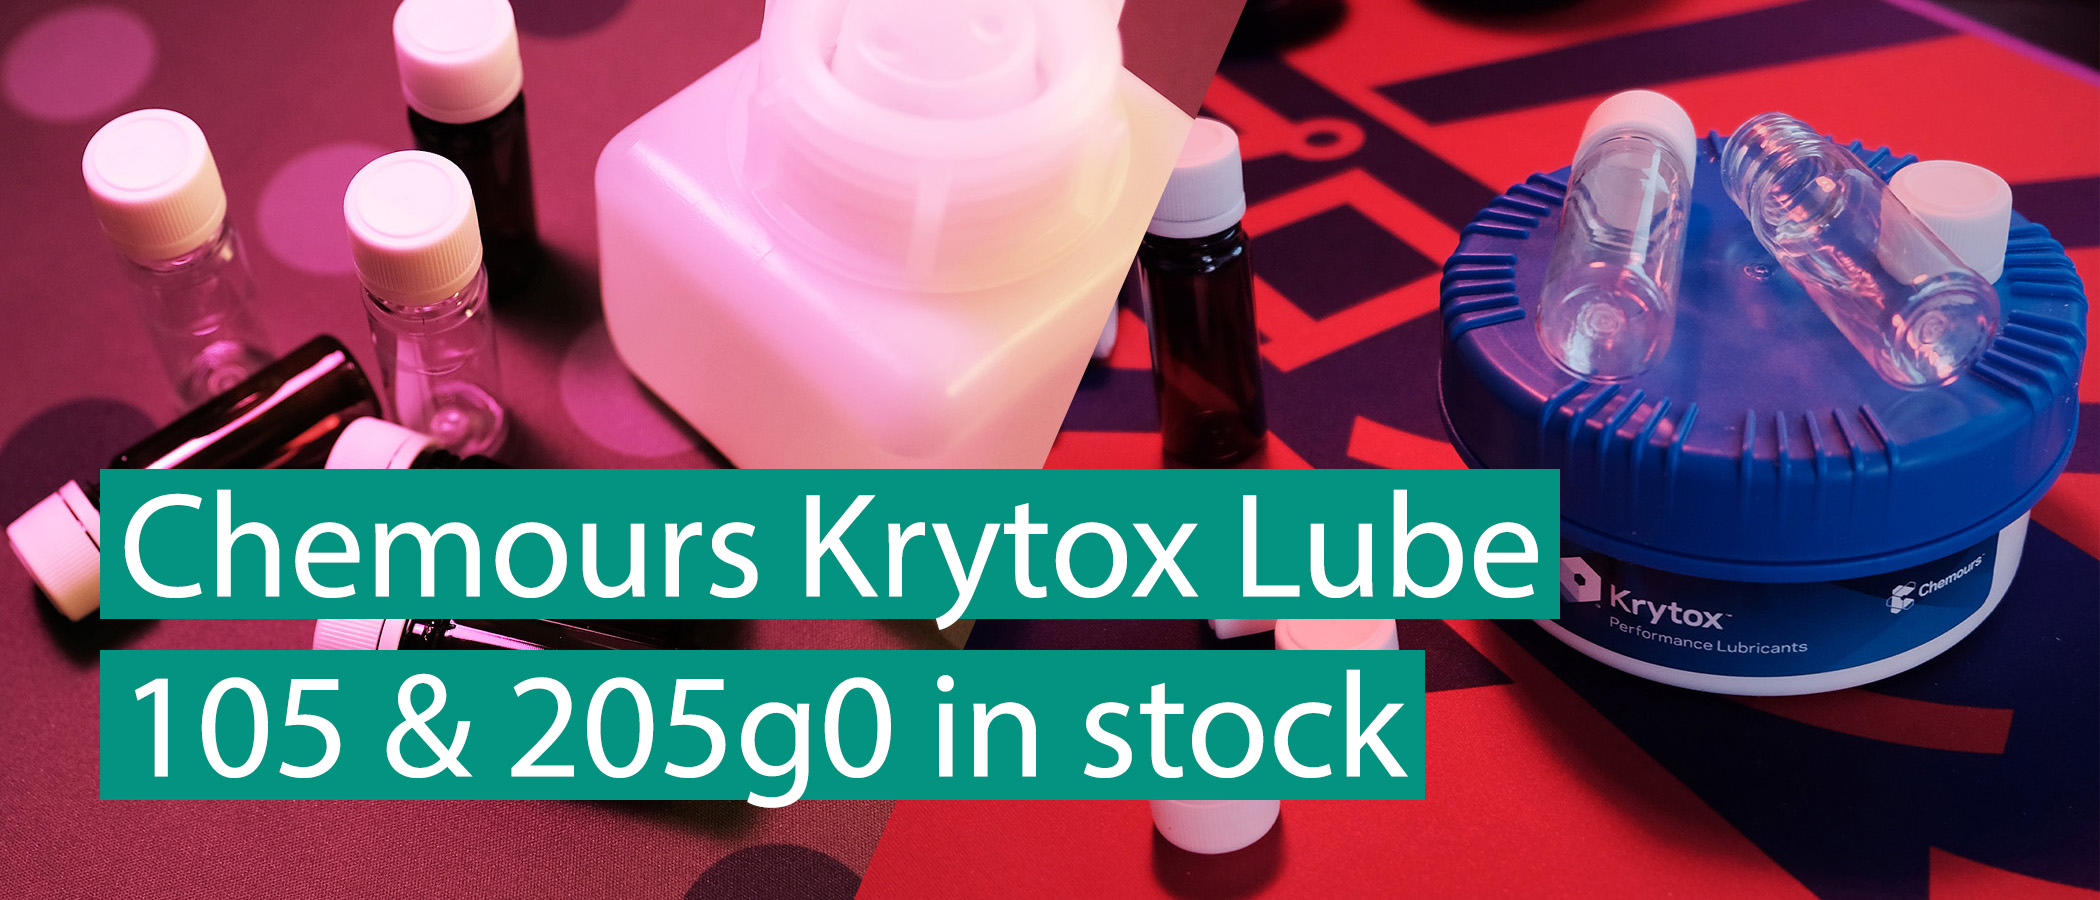 Krytox 105 and 205g0 are in stock!